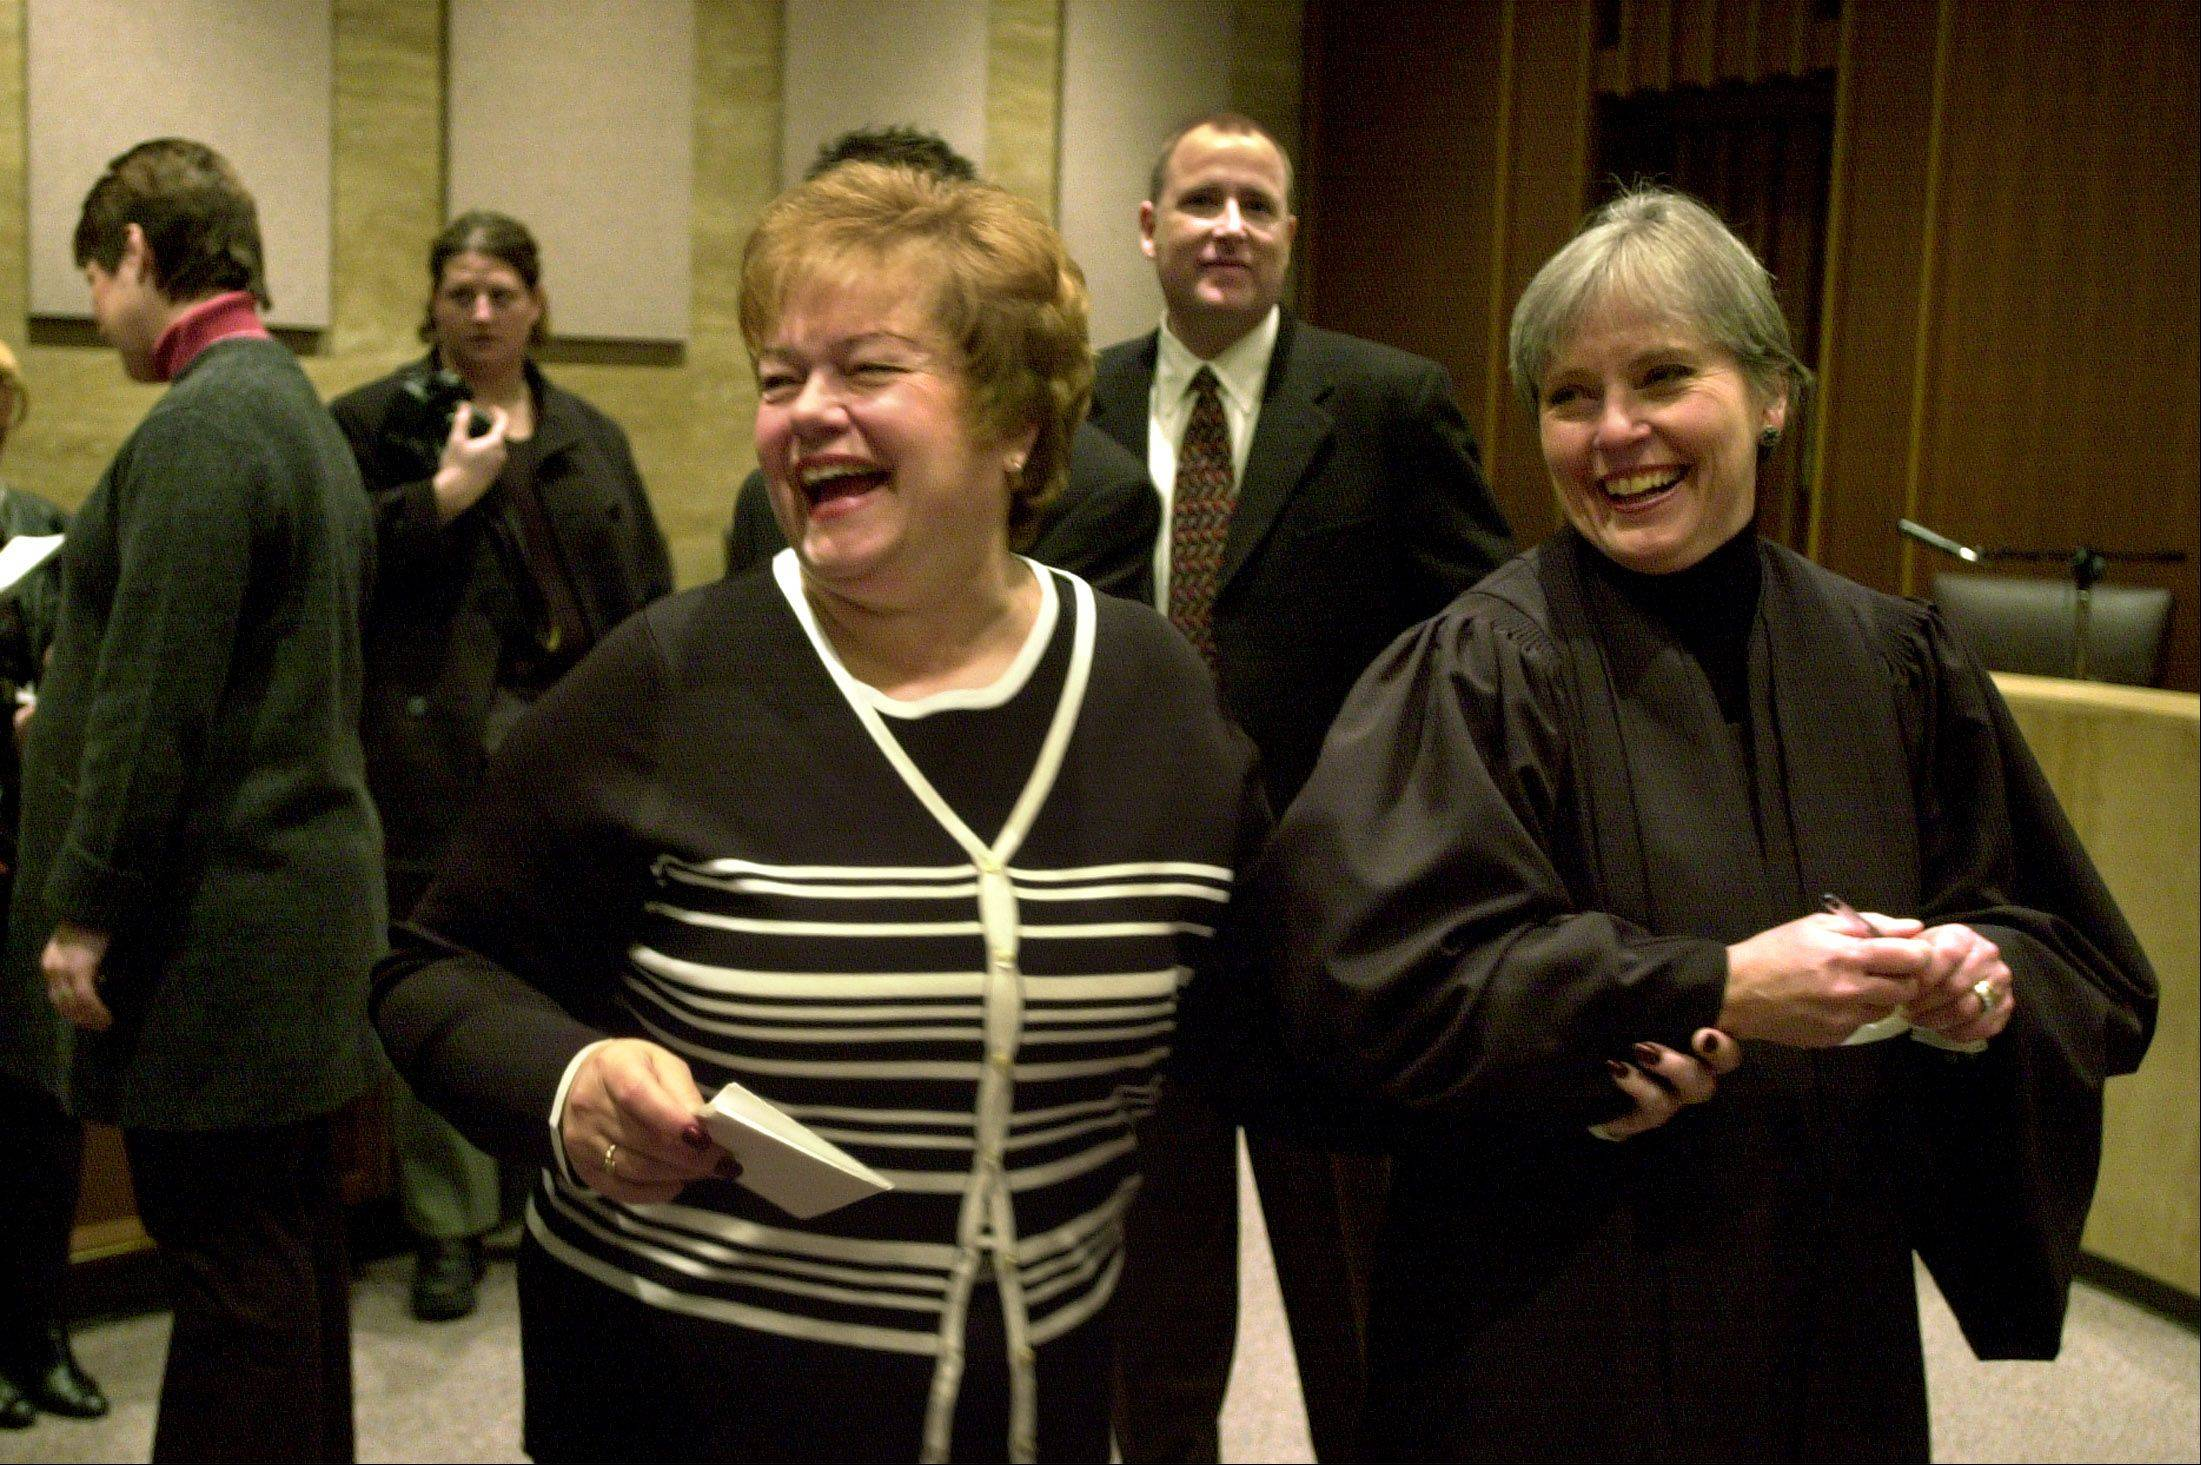 JoAnn Osmond, left, was sworn in by then-Chief Judge Jane Waller in 2002. Osmond has decided not to seek re-election in 2014.